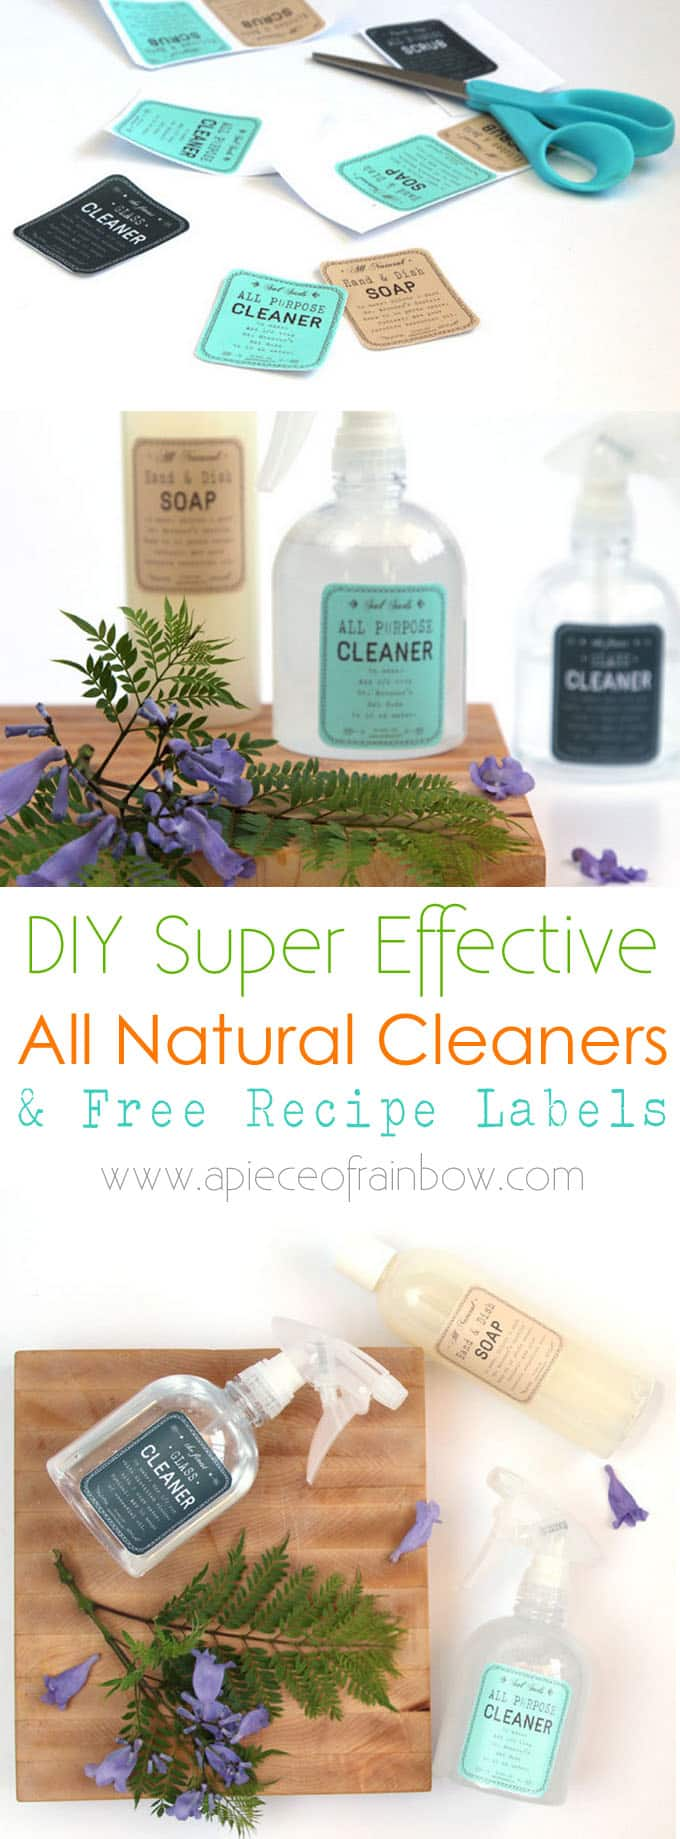 DIY-natural-cleaning-products-apieceofrainbow (1)